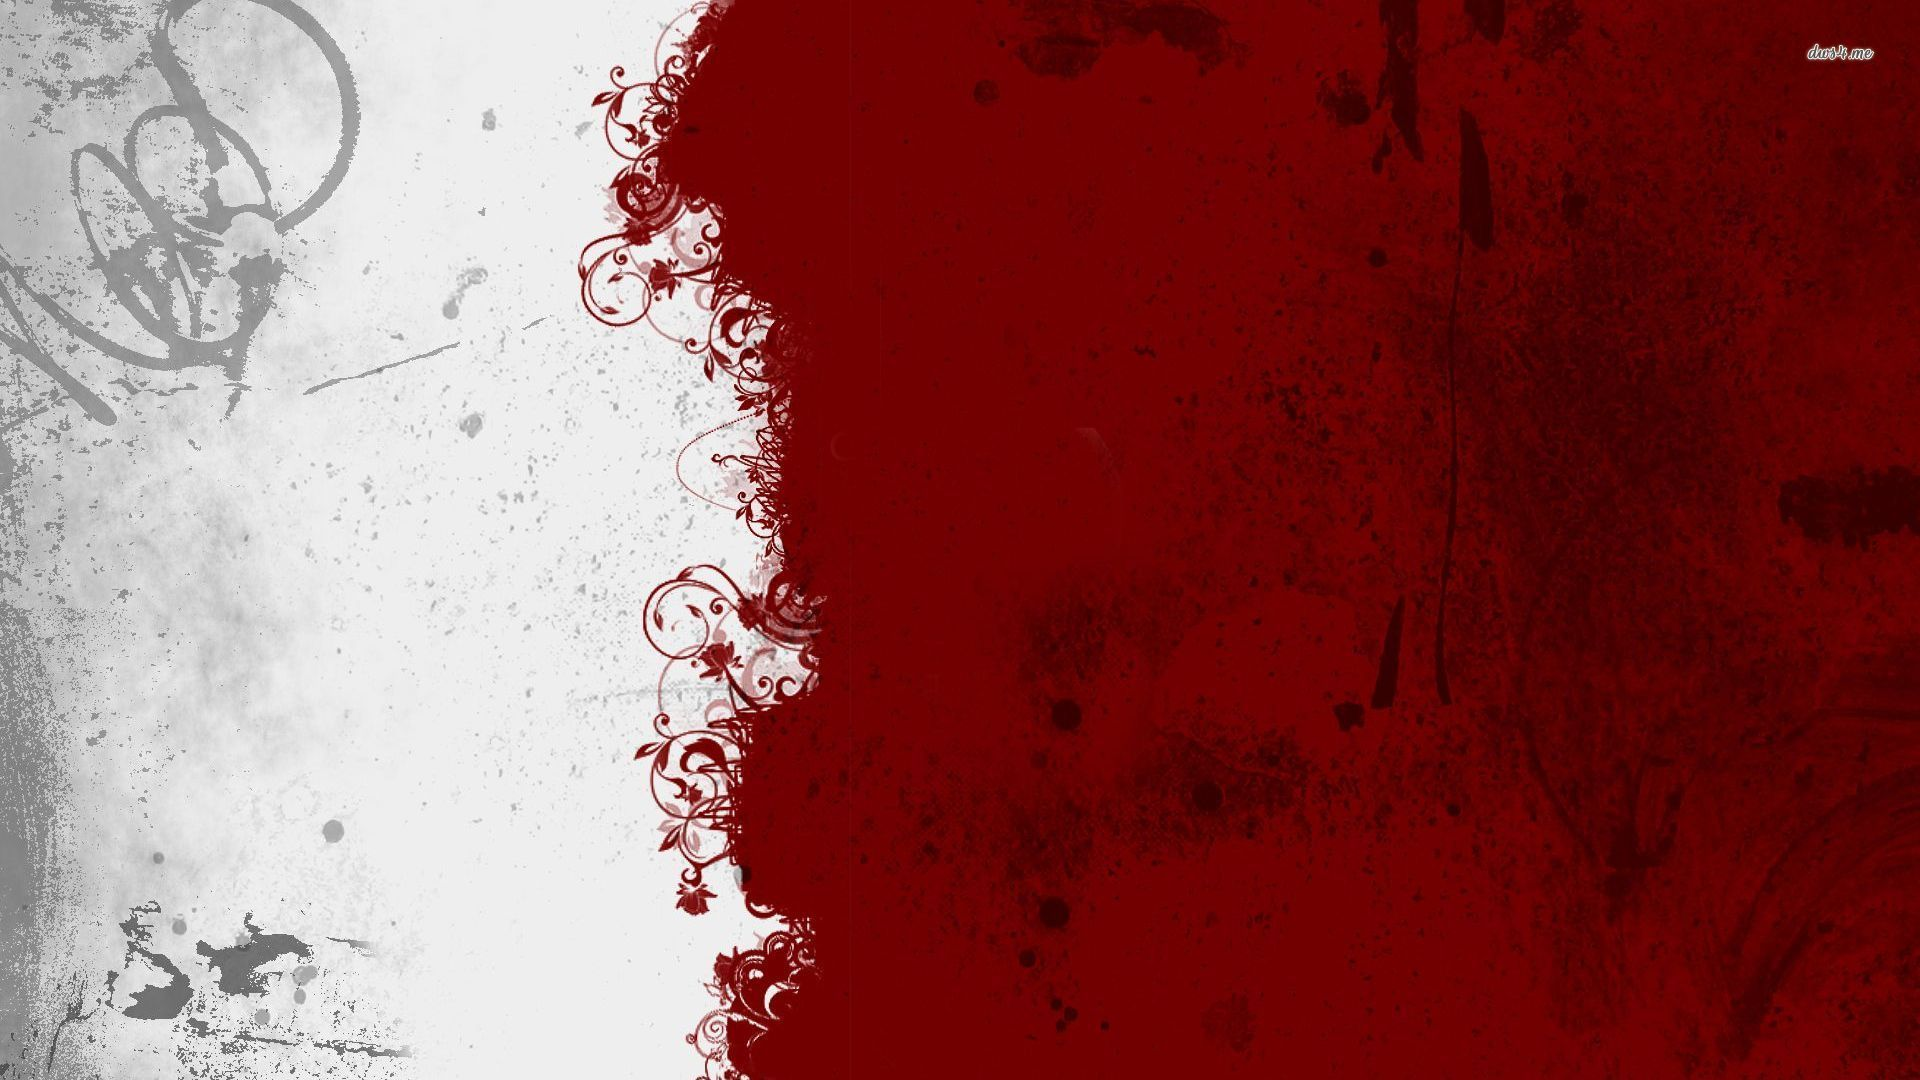 Red White Wallpaper 2015 Grasscloth Wallpaper Red And White Wallpaper Red Wallpaper Abstract Wallpaper